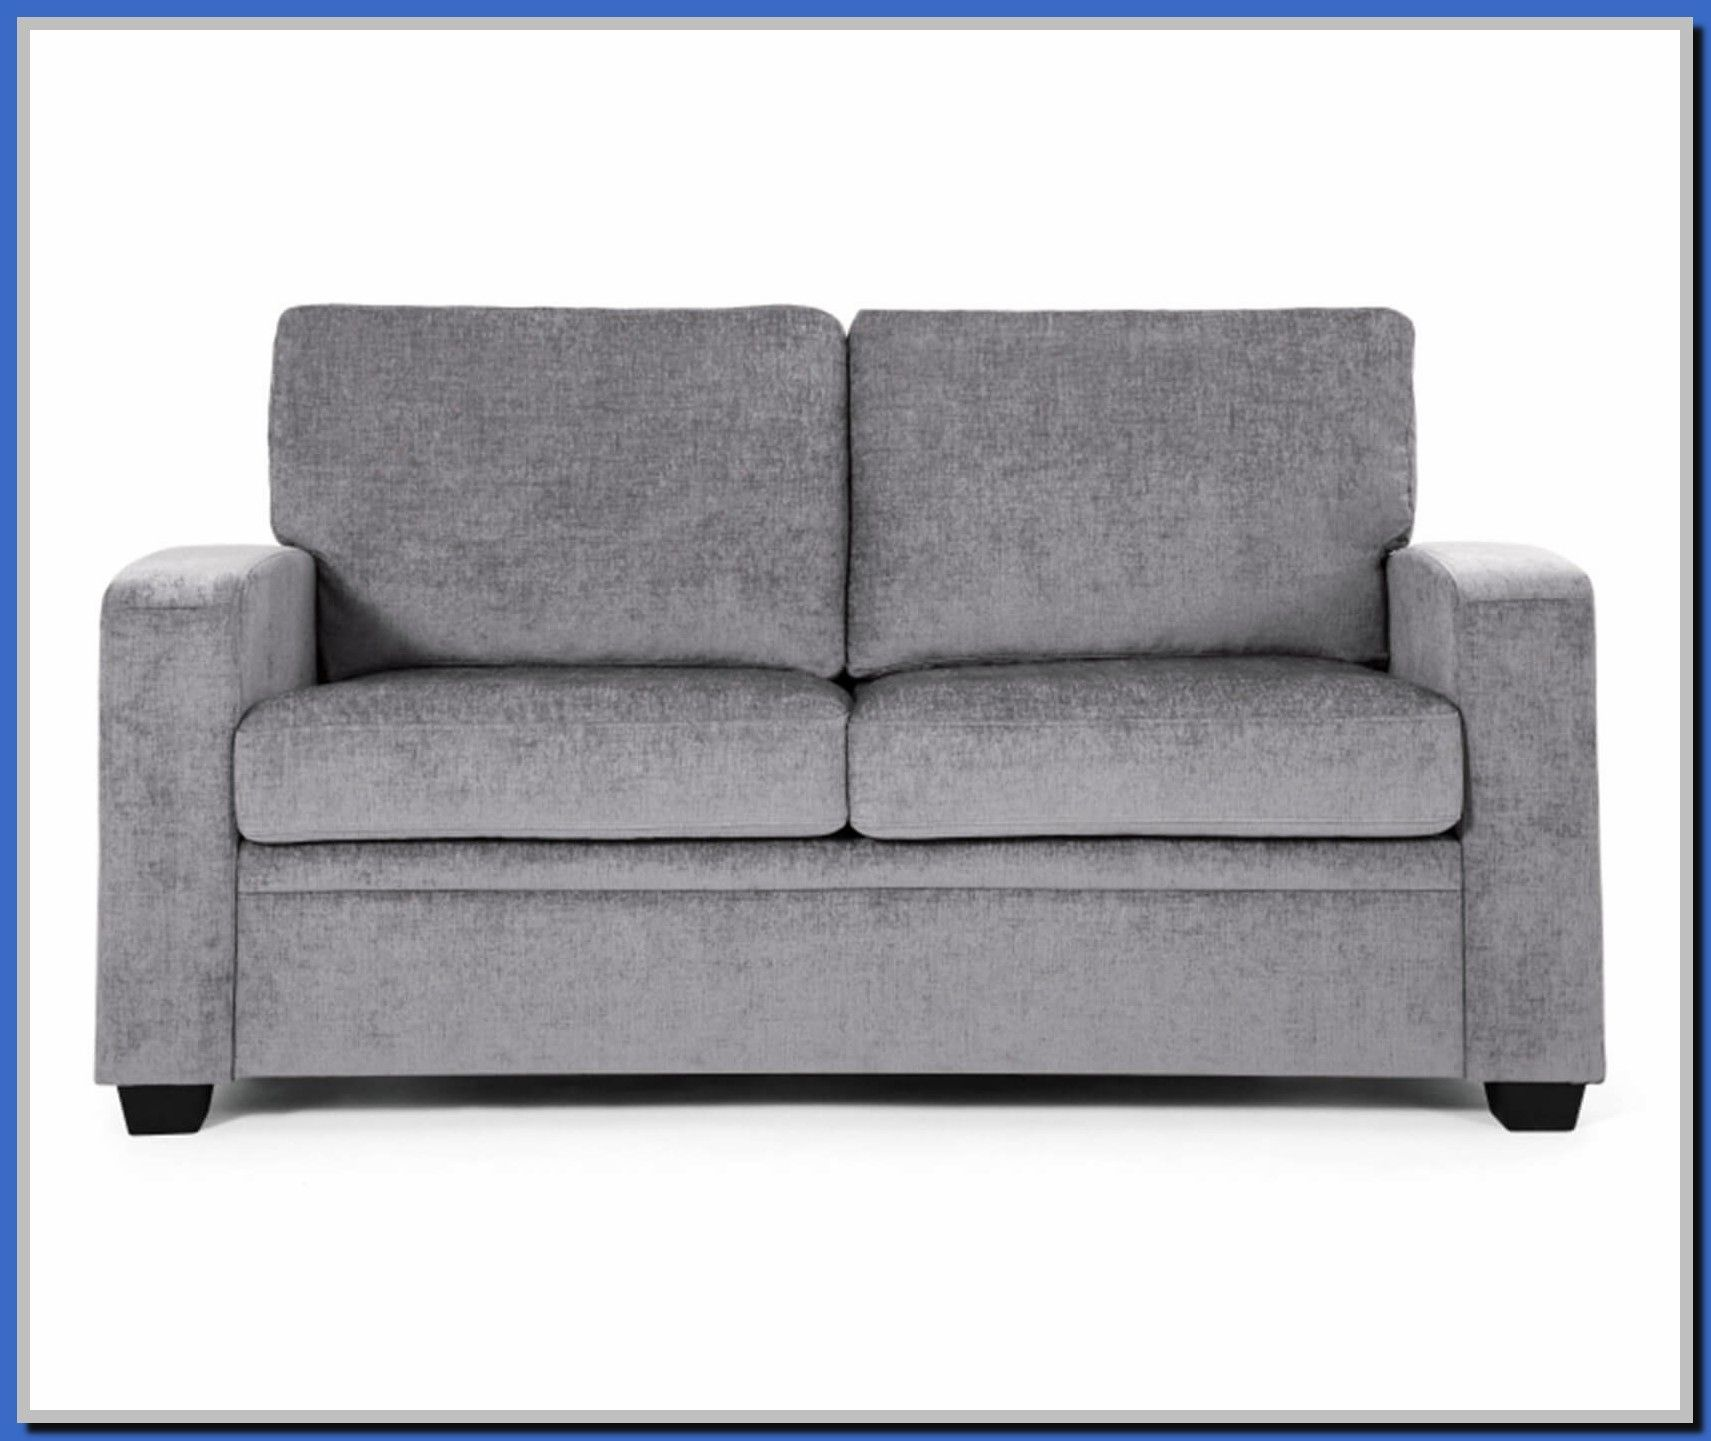 58 Reference Of Sofa Bed Fabric Melbourne In 2020 Fabric Sofa Bed Sofa Bed Furniture Sofa Bed Design